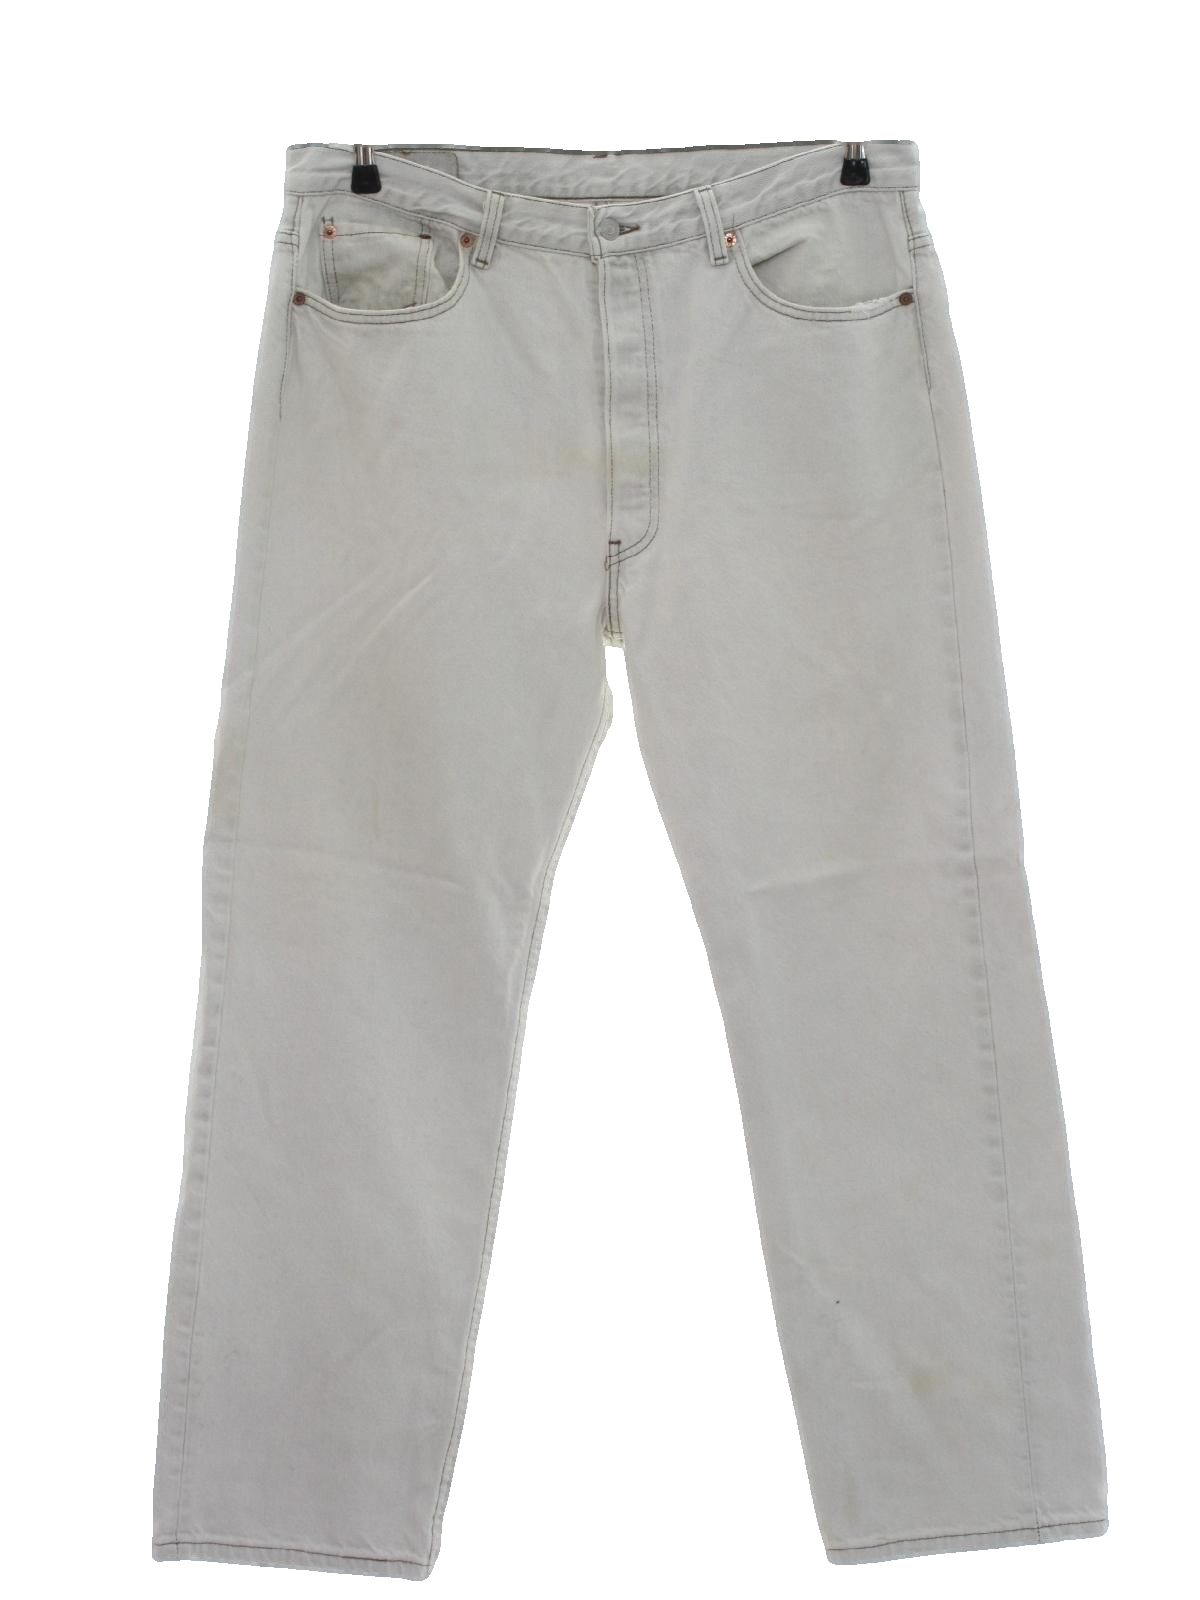 0cde9d4f Retro 1990's Pants (Levis) : 90s or Newer -Levis- 501- Mens slightly ...